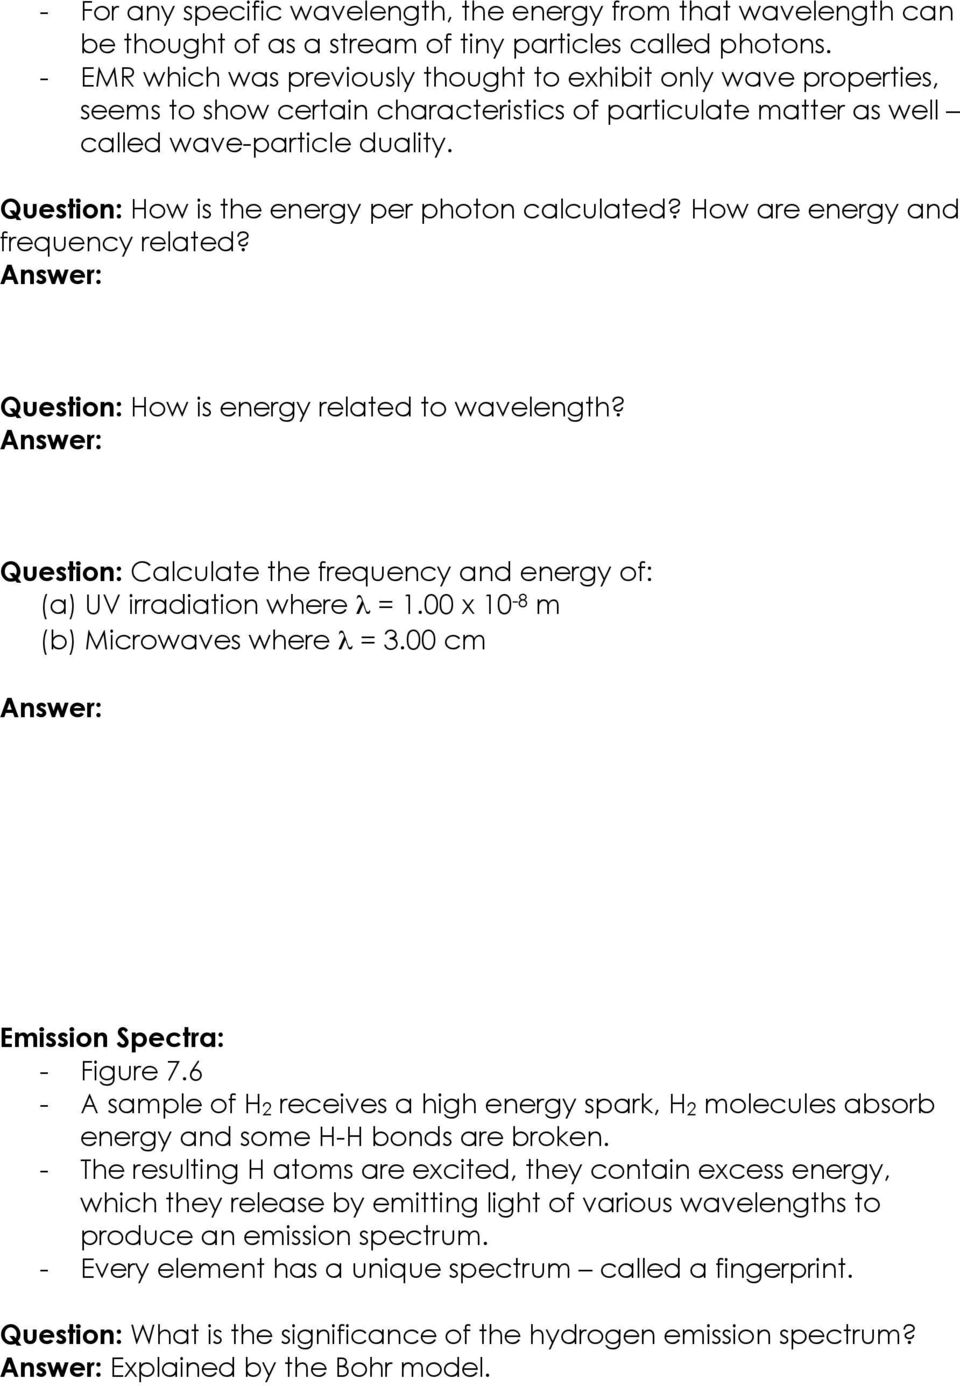 Question: How is the energy per photon calculated? How are energy and frequency related? Question: How is energy related to wavelength?